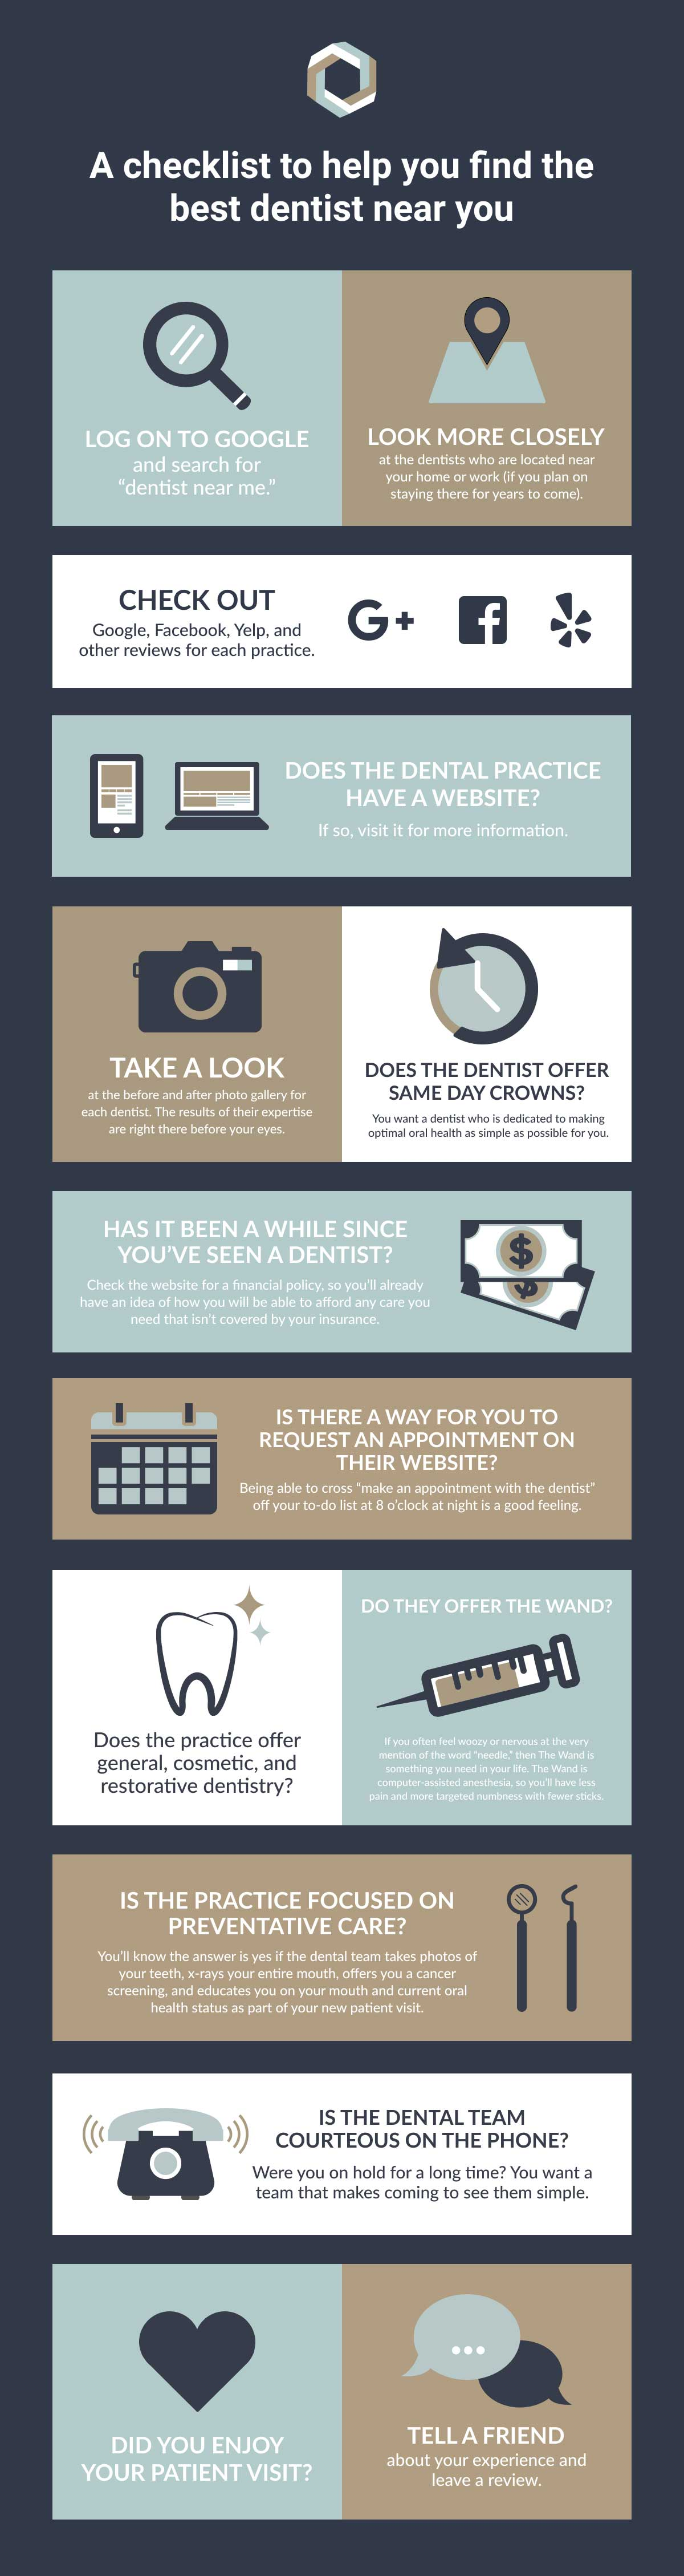 dentist-near-you-infographic